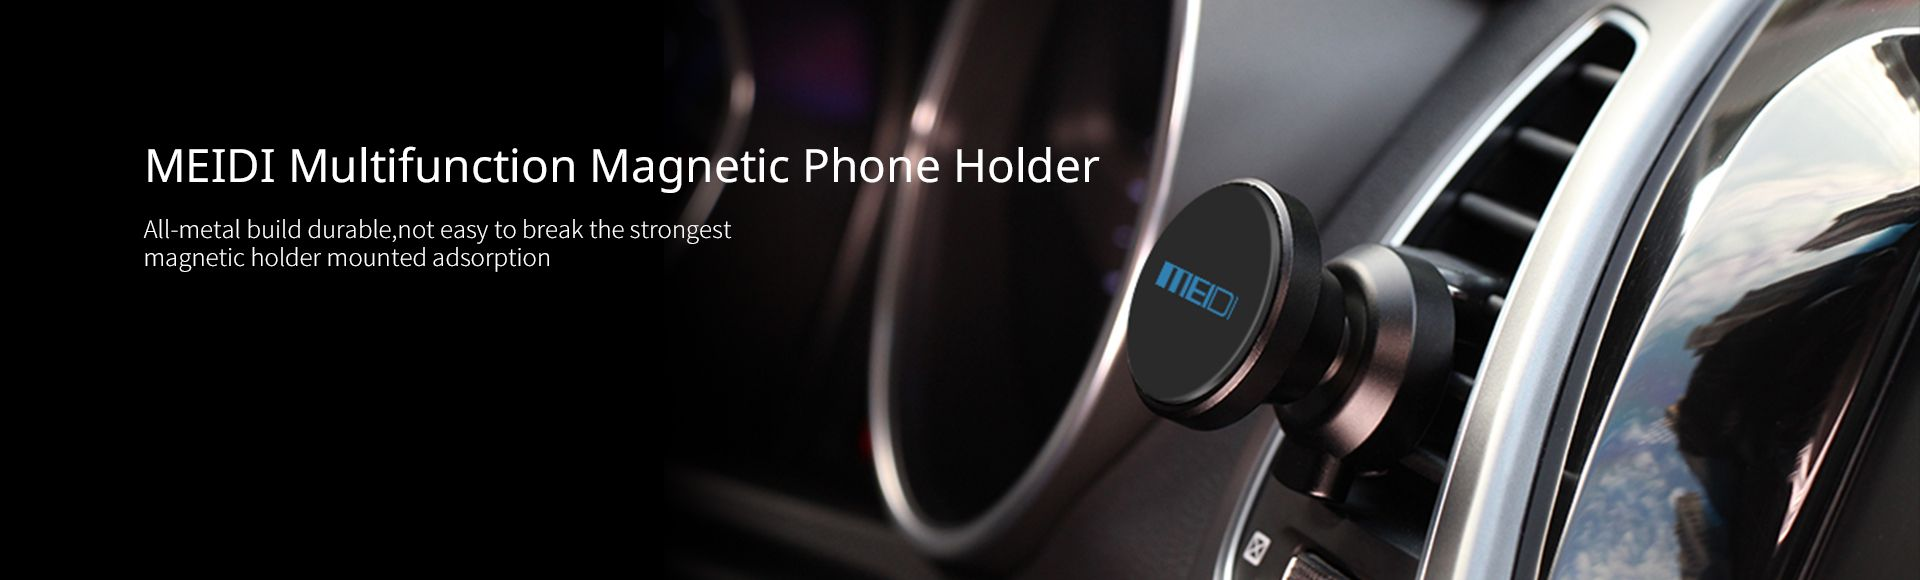 MEIDI Magnetic Car Phone Mount - 360 degree rotation,Magnetic phone holder for car,Compatible with most mobile phones